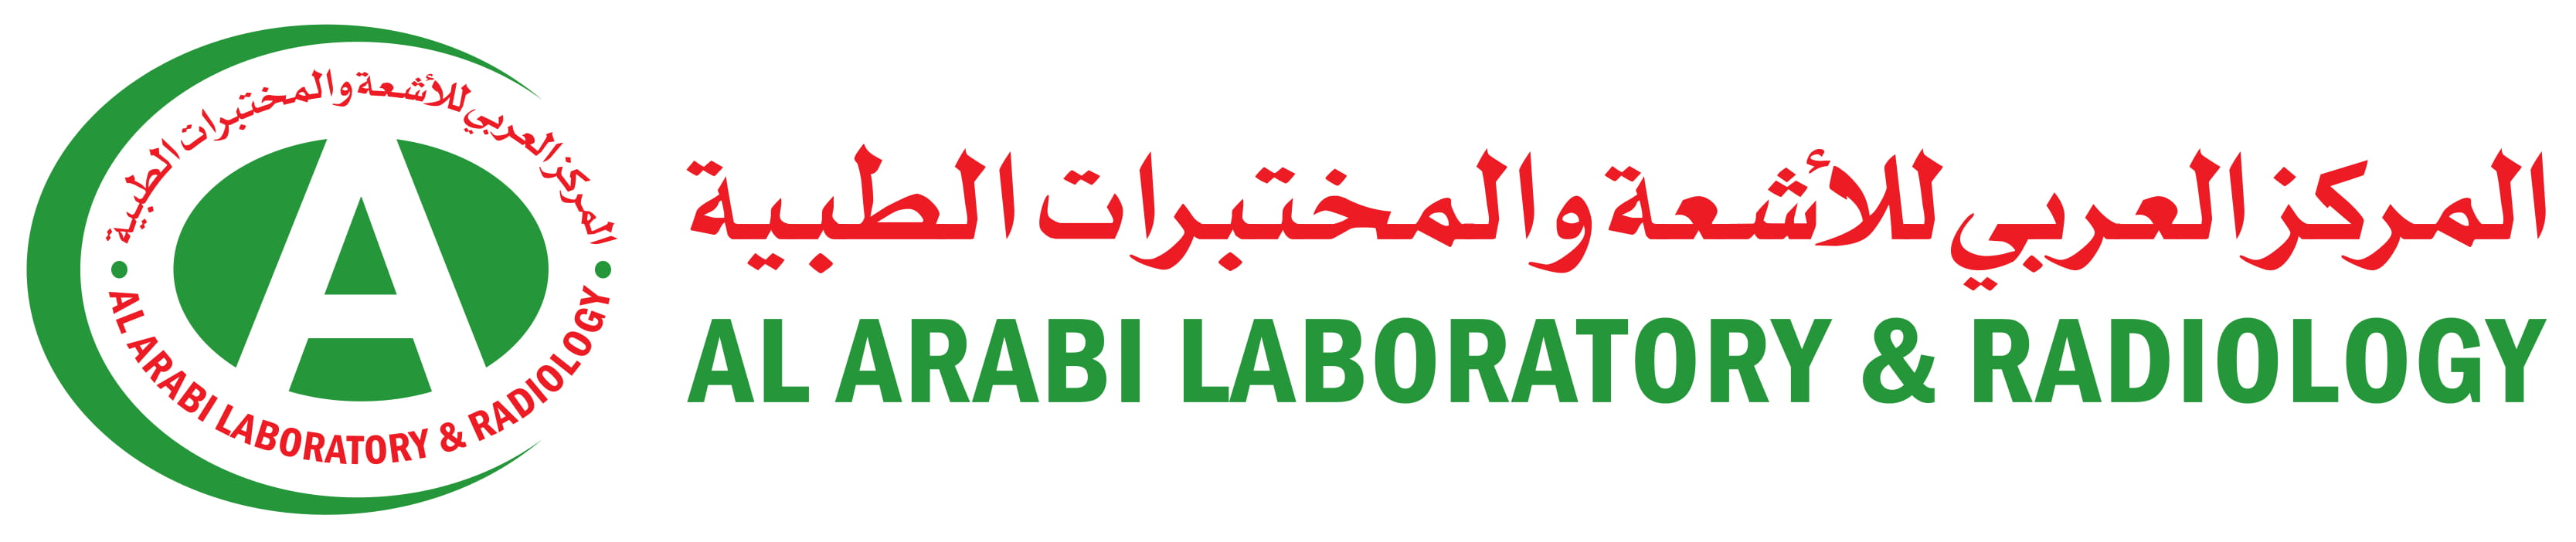 Al Arabi Laboratory and Radiology